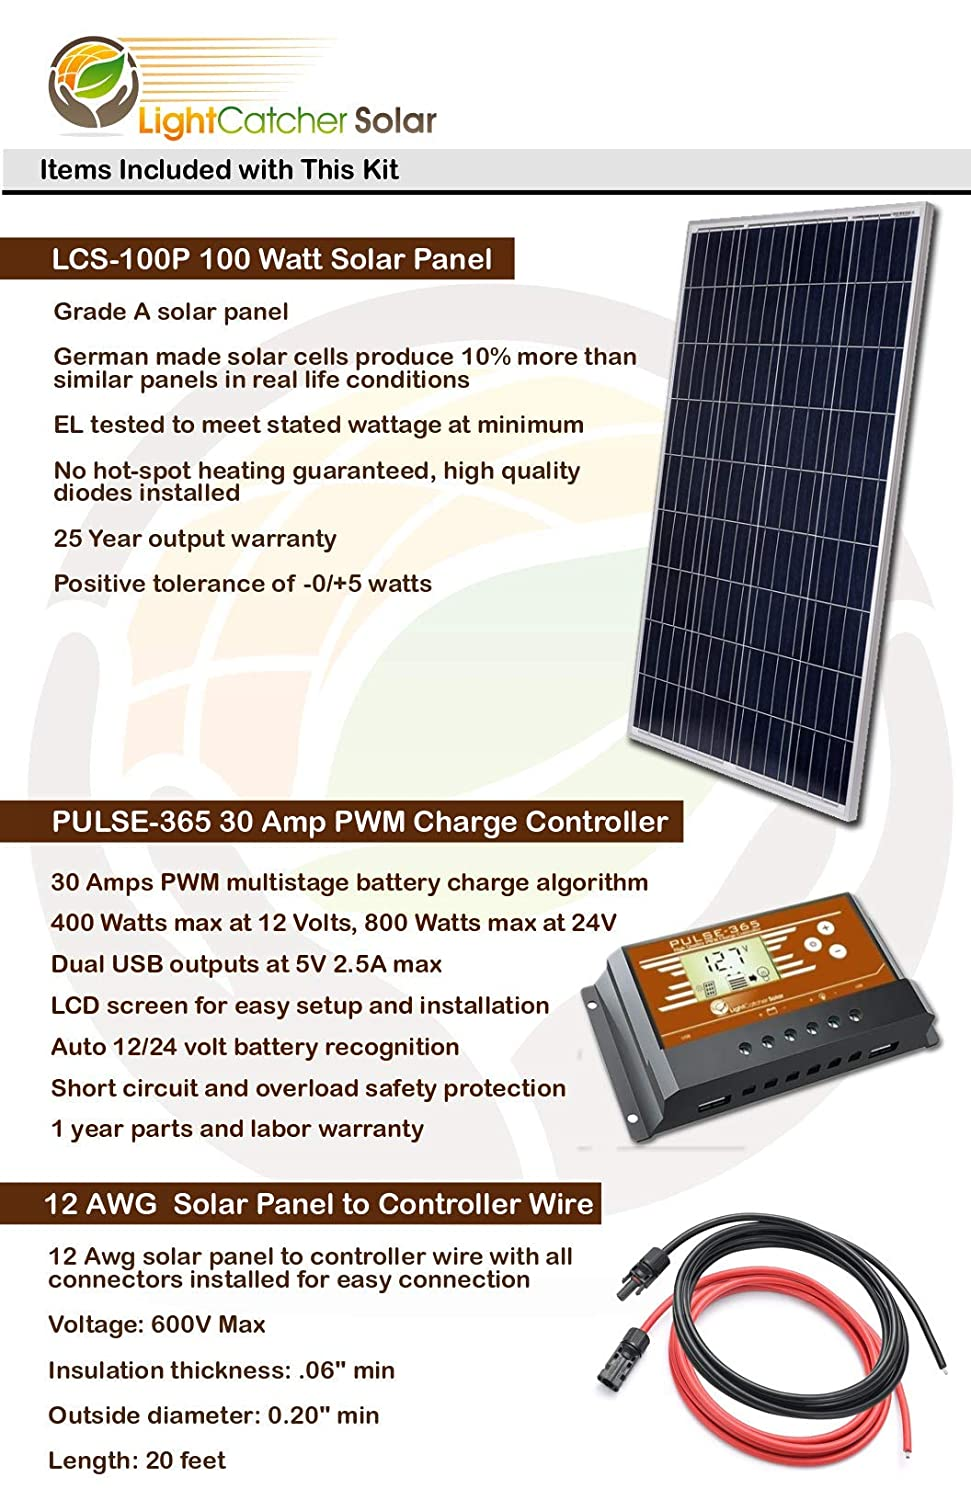 Iring Diagram For Wiring The Six 12 Volt 100w Solar Panels For 24 Volt